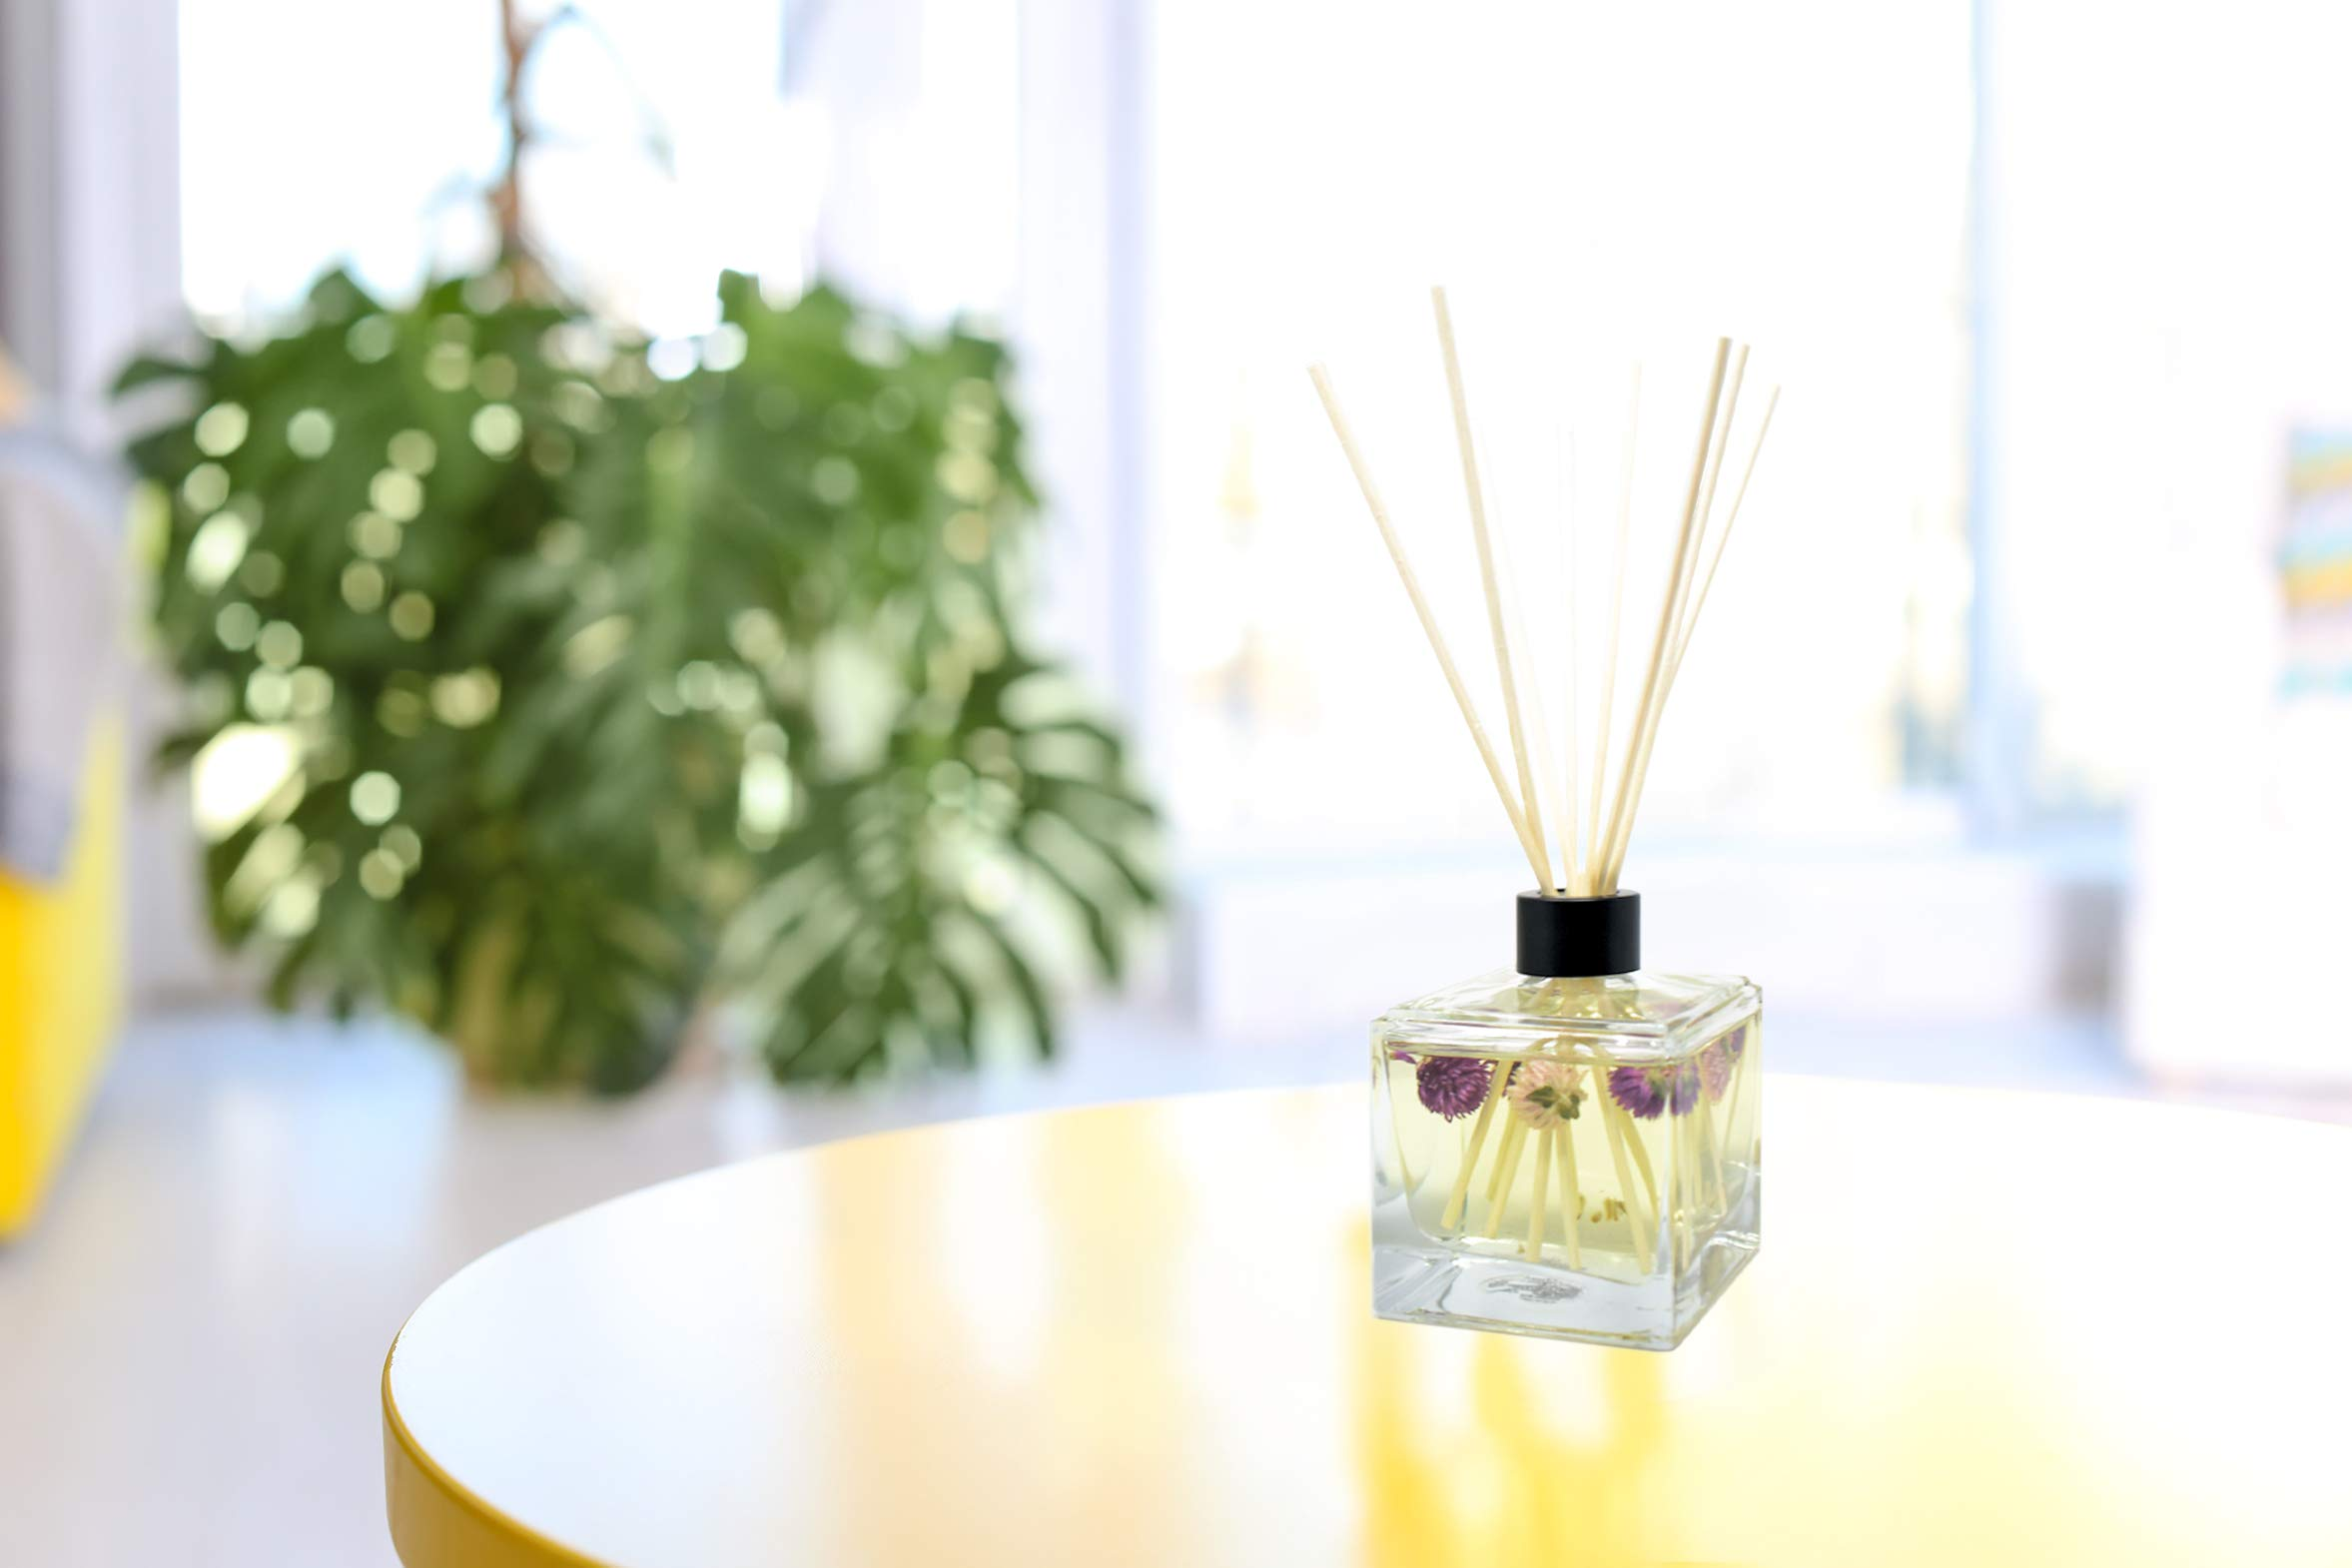 LOVSPA Fresh Cut Flowers Reed Diffuser Oil and Sticks Gift Set | Spring is in The Air! A Floral Medley of Sweet Lilac, Pink Freesia, Hyacinth, Rose & Green Ivy Leaves | Real Flowers in The Bottle! by LOVSPA (Image #5)